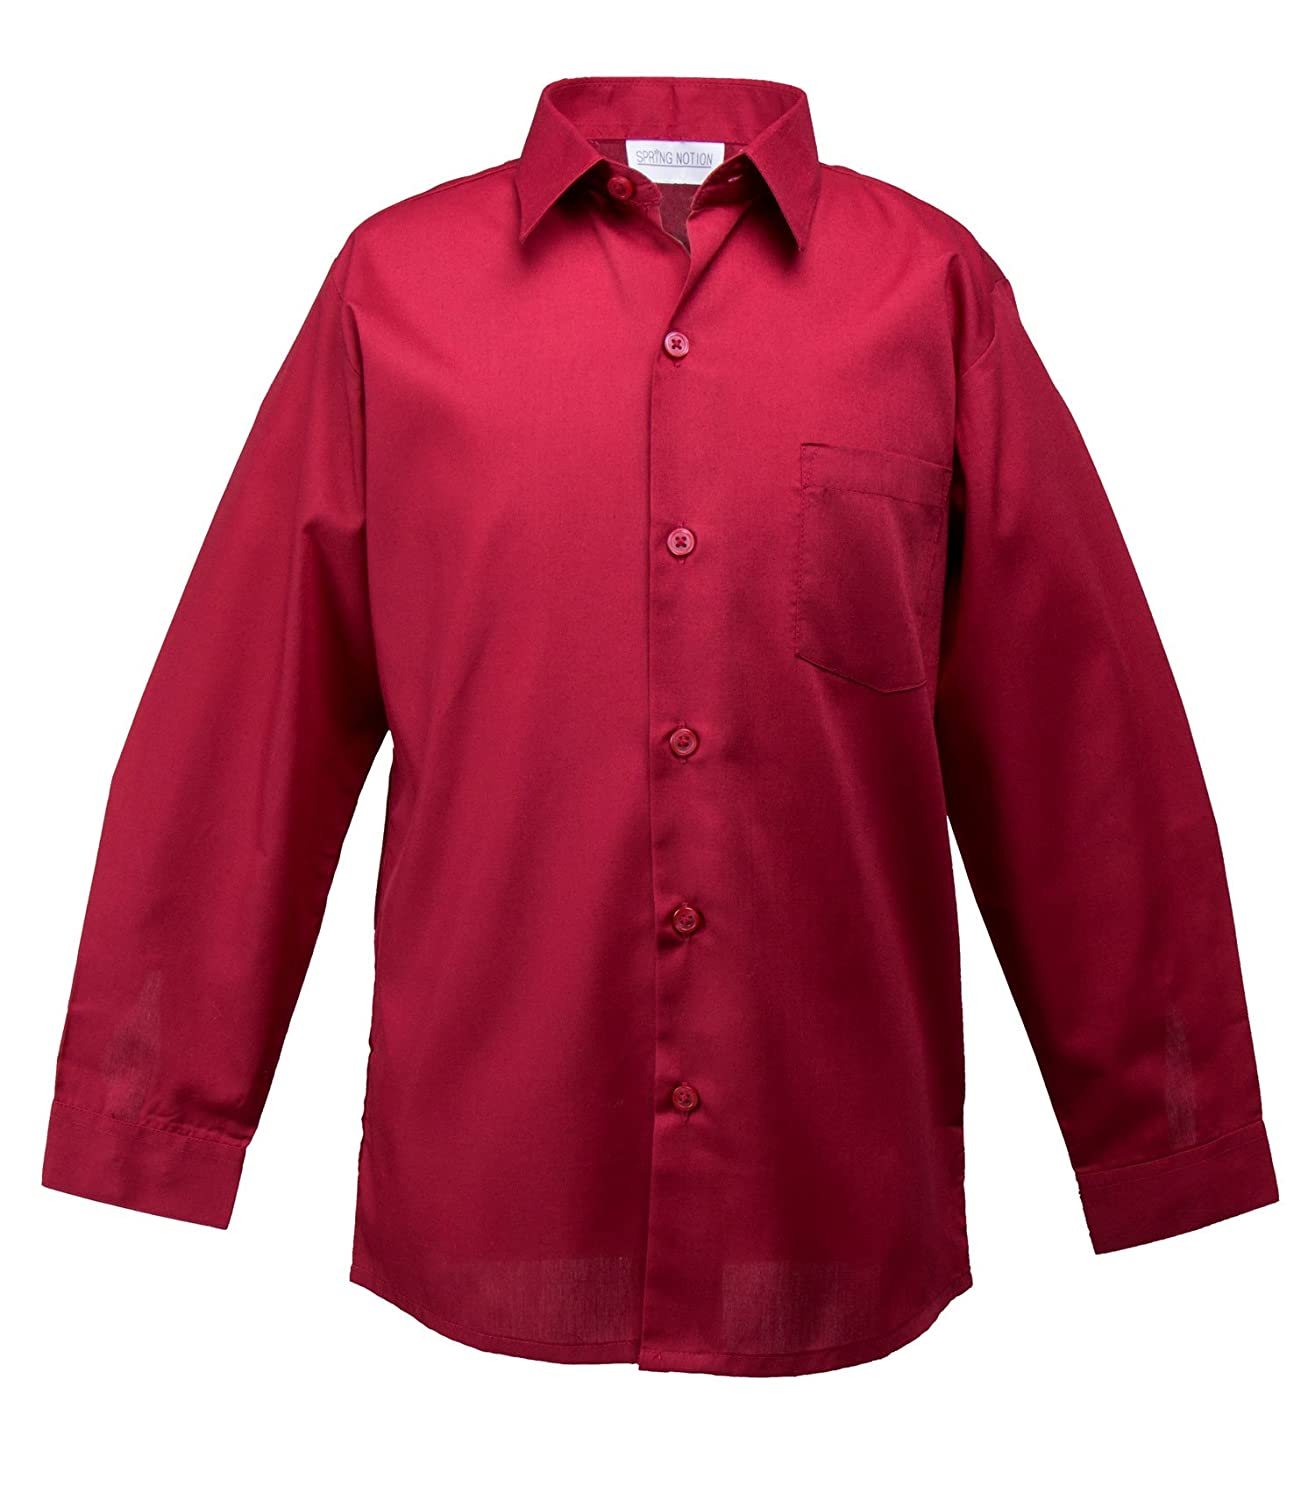 Spring Notion Baby Boys' Long Sleeve Dress Shirt